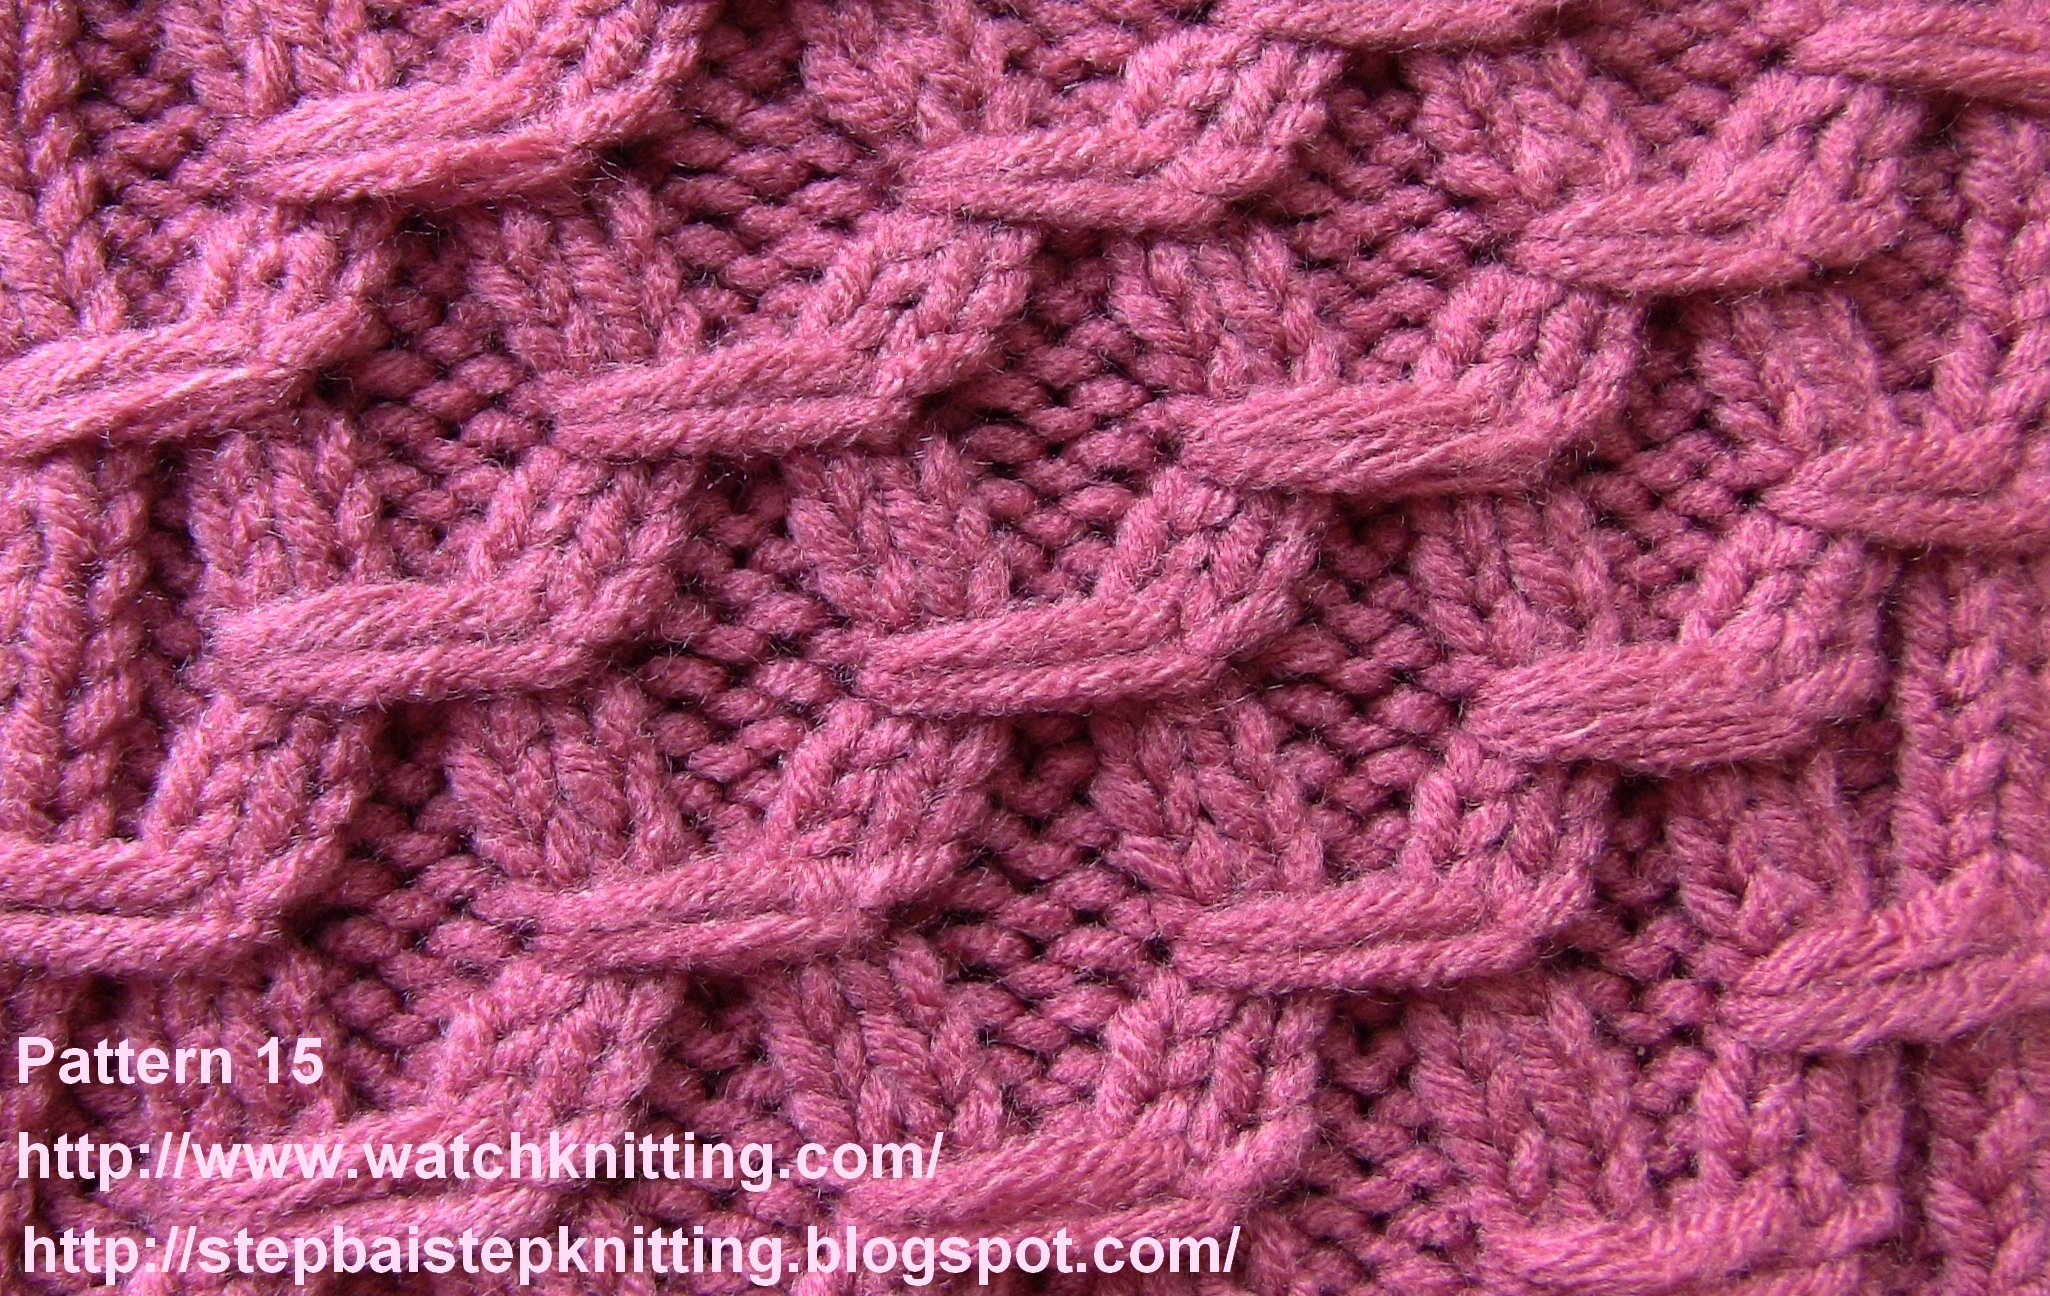 CROCHET PATTERN ABBREVIATIONS - Crochet Club